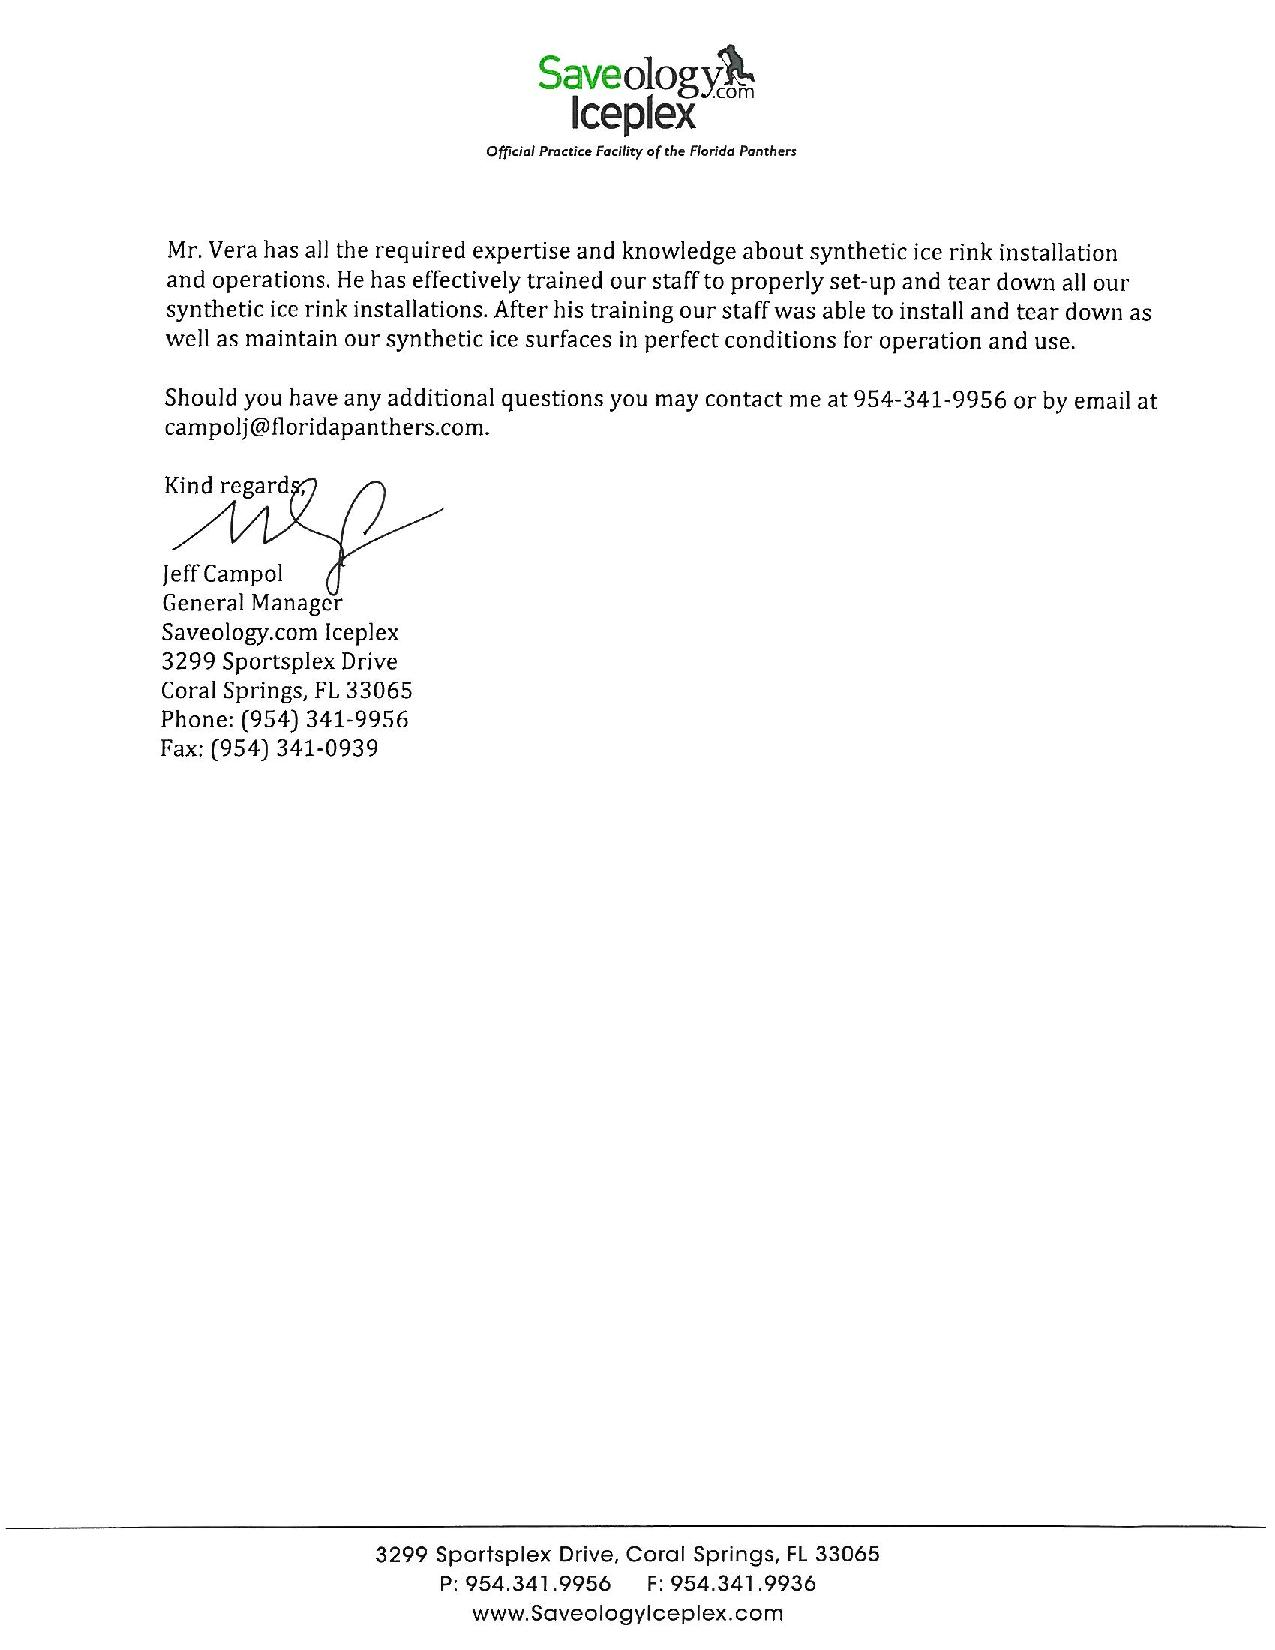 BUSINESS REF. LETTER J. CAMPOL-page-002